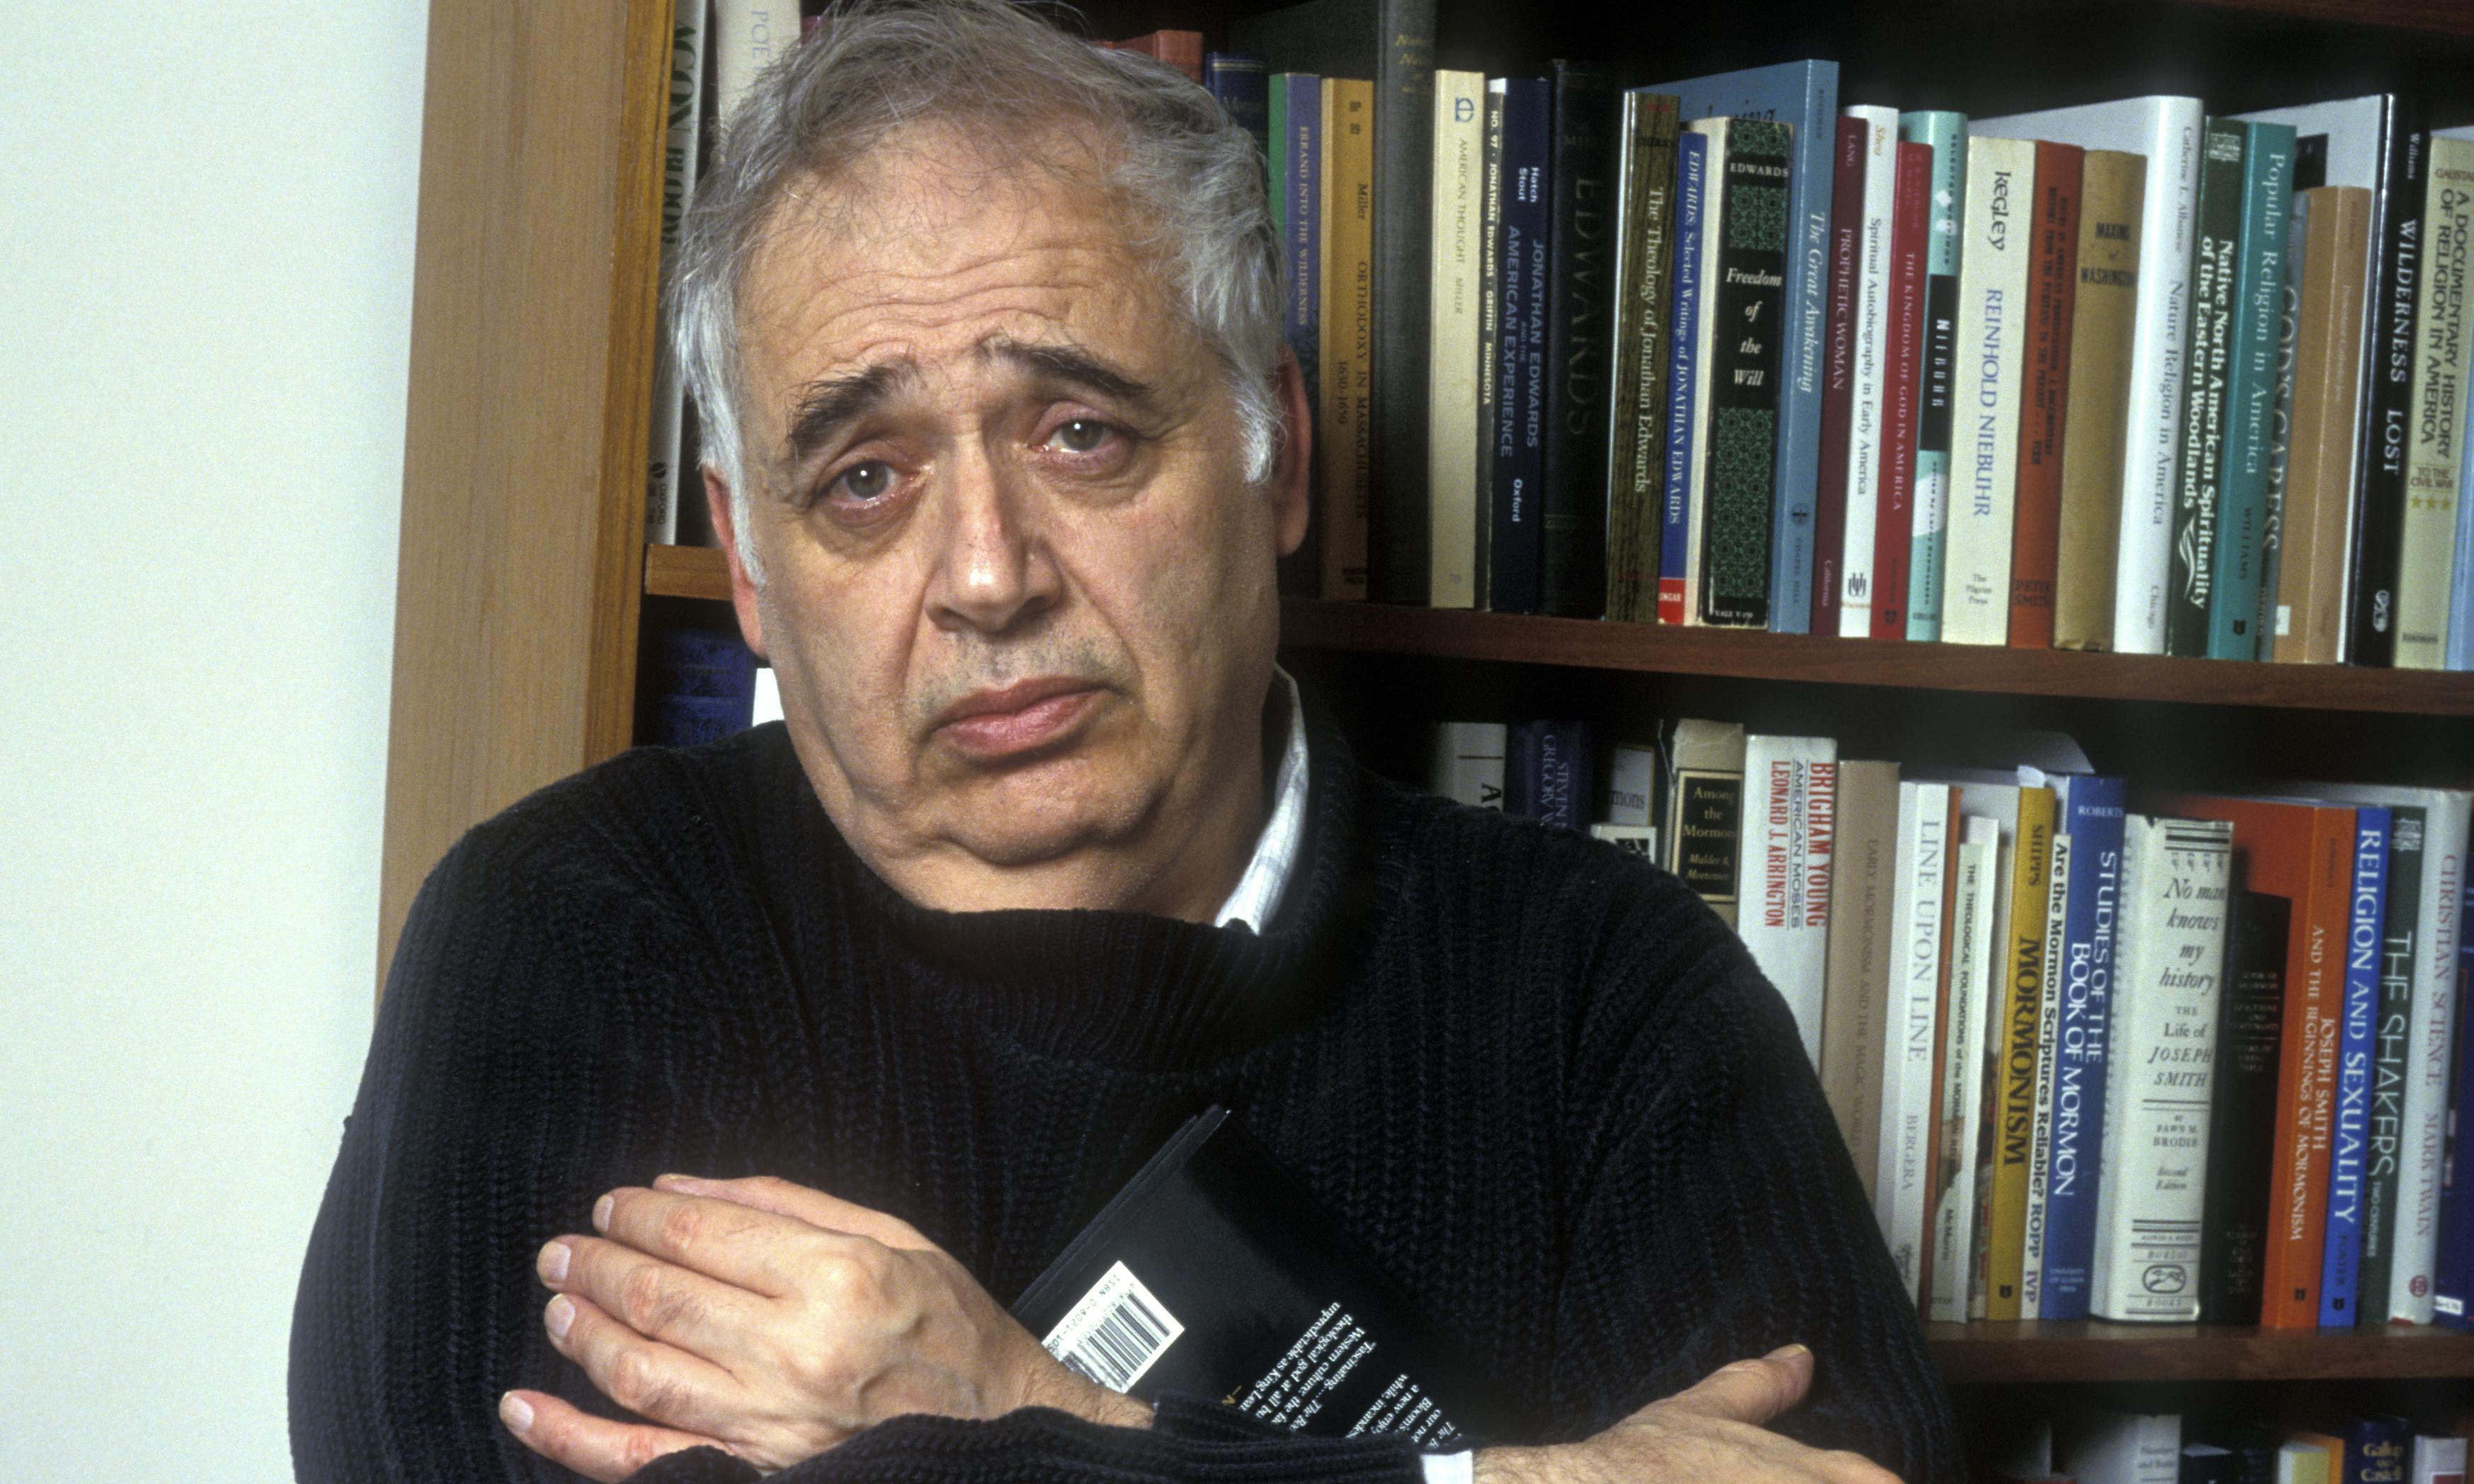 Harold Bloom's defence of western greats blinded him to other cultures